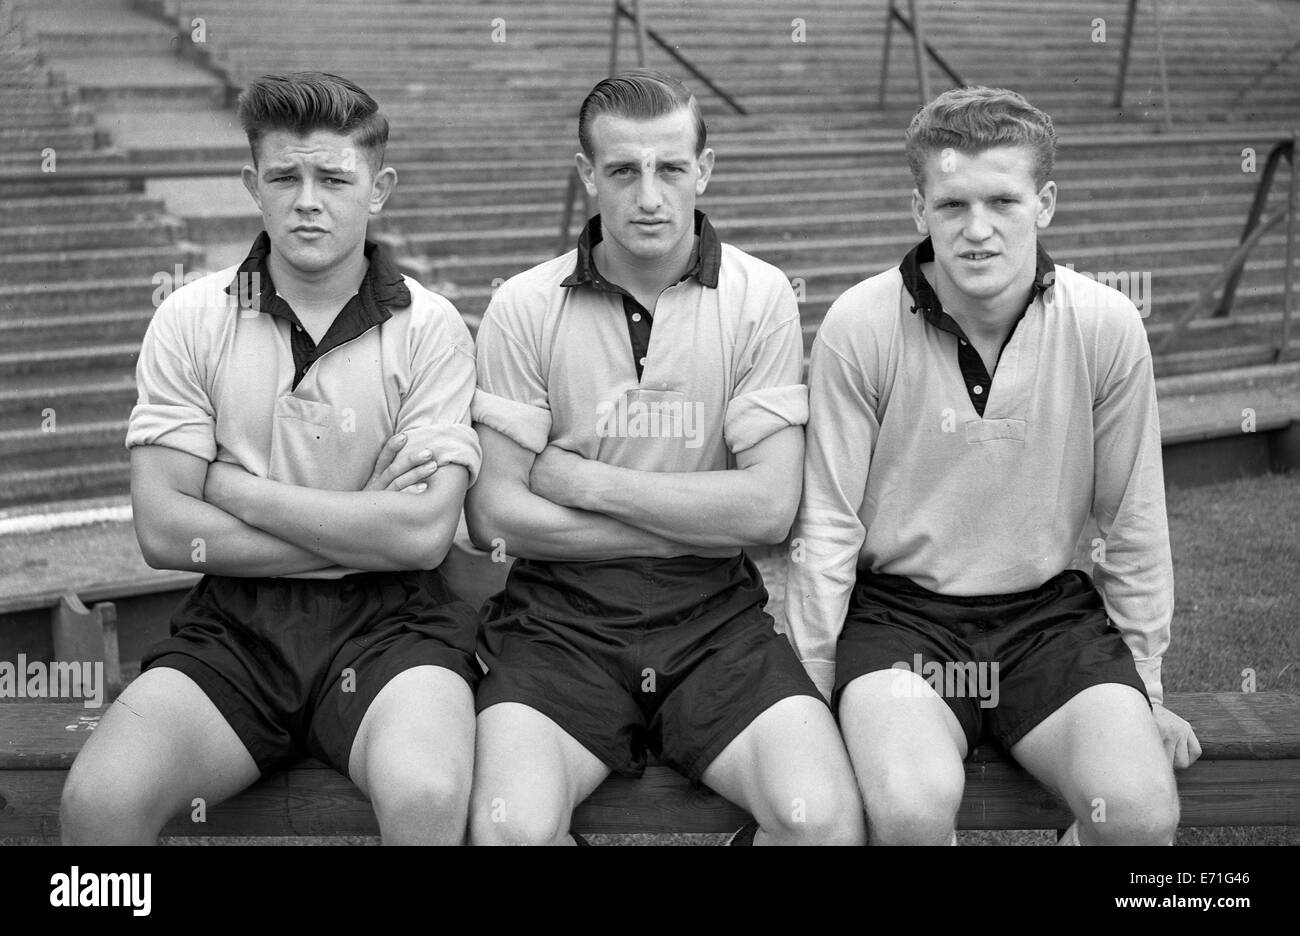 Colin Tether, Gerry Harris and Bobby Thompson Wolverhampton Wanderers footballer 1955 - Stock Image